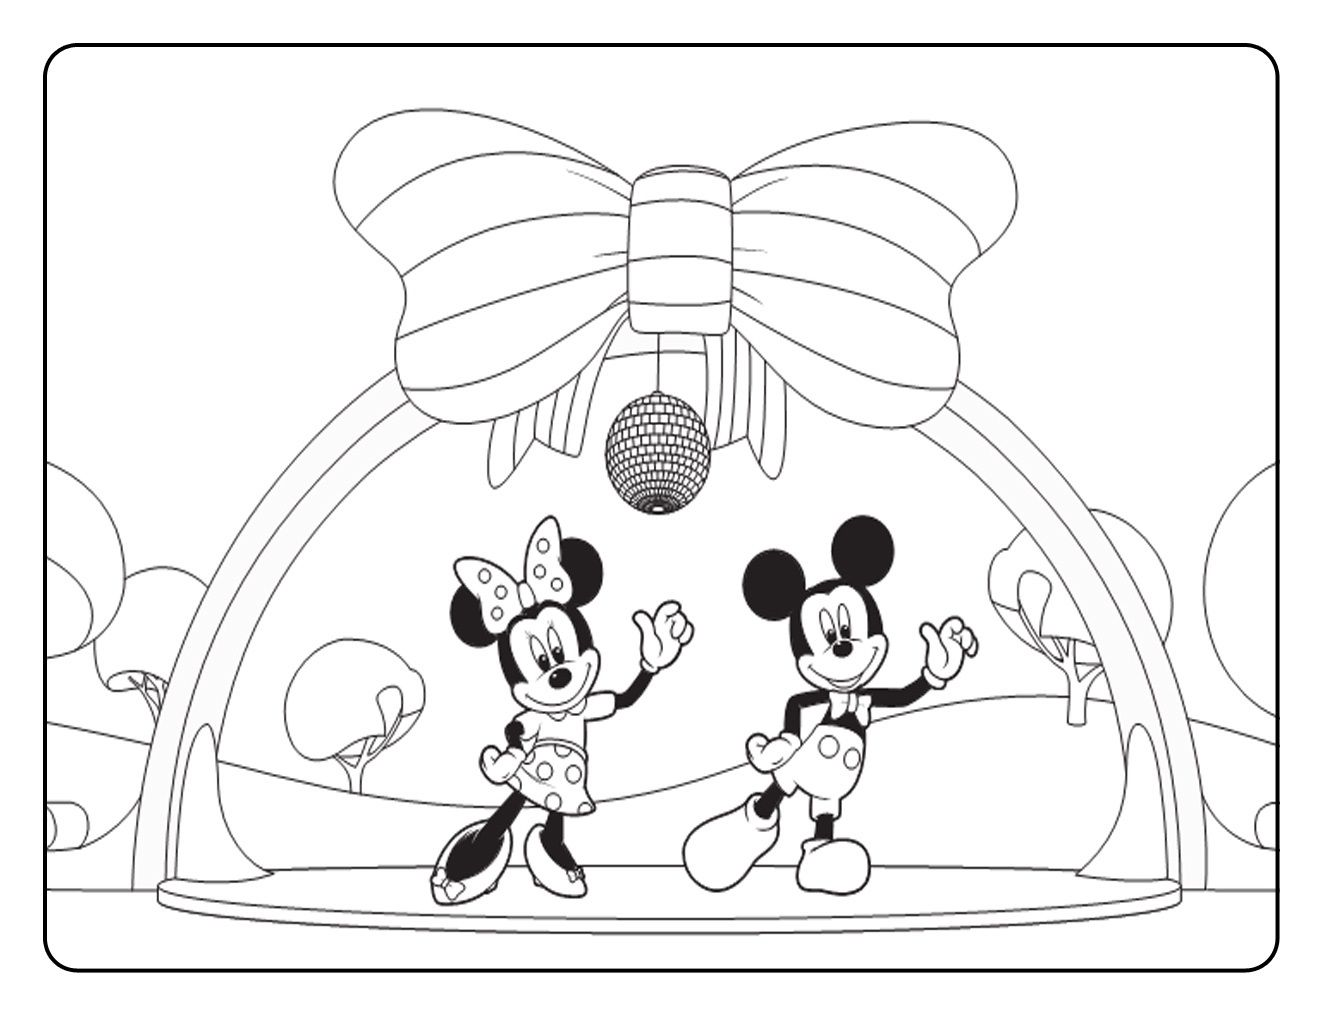 Mickey Mouse Clubhouse Coloring Pages Best Coloring Pages For Kids Mickey Mouse Coloring Pages Mickey Coloring Pages Mickey Mouse Drawings